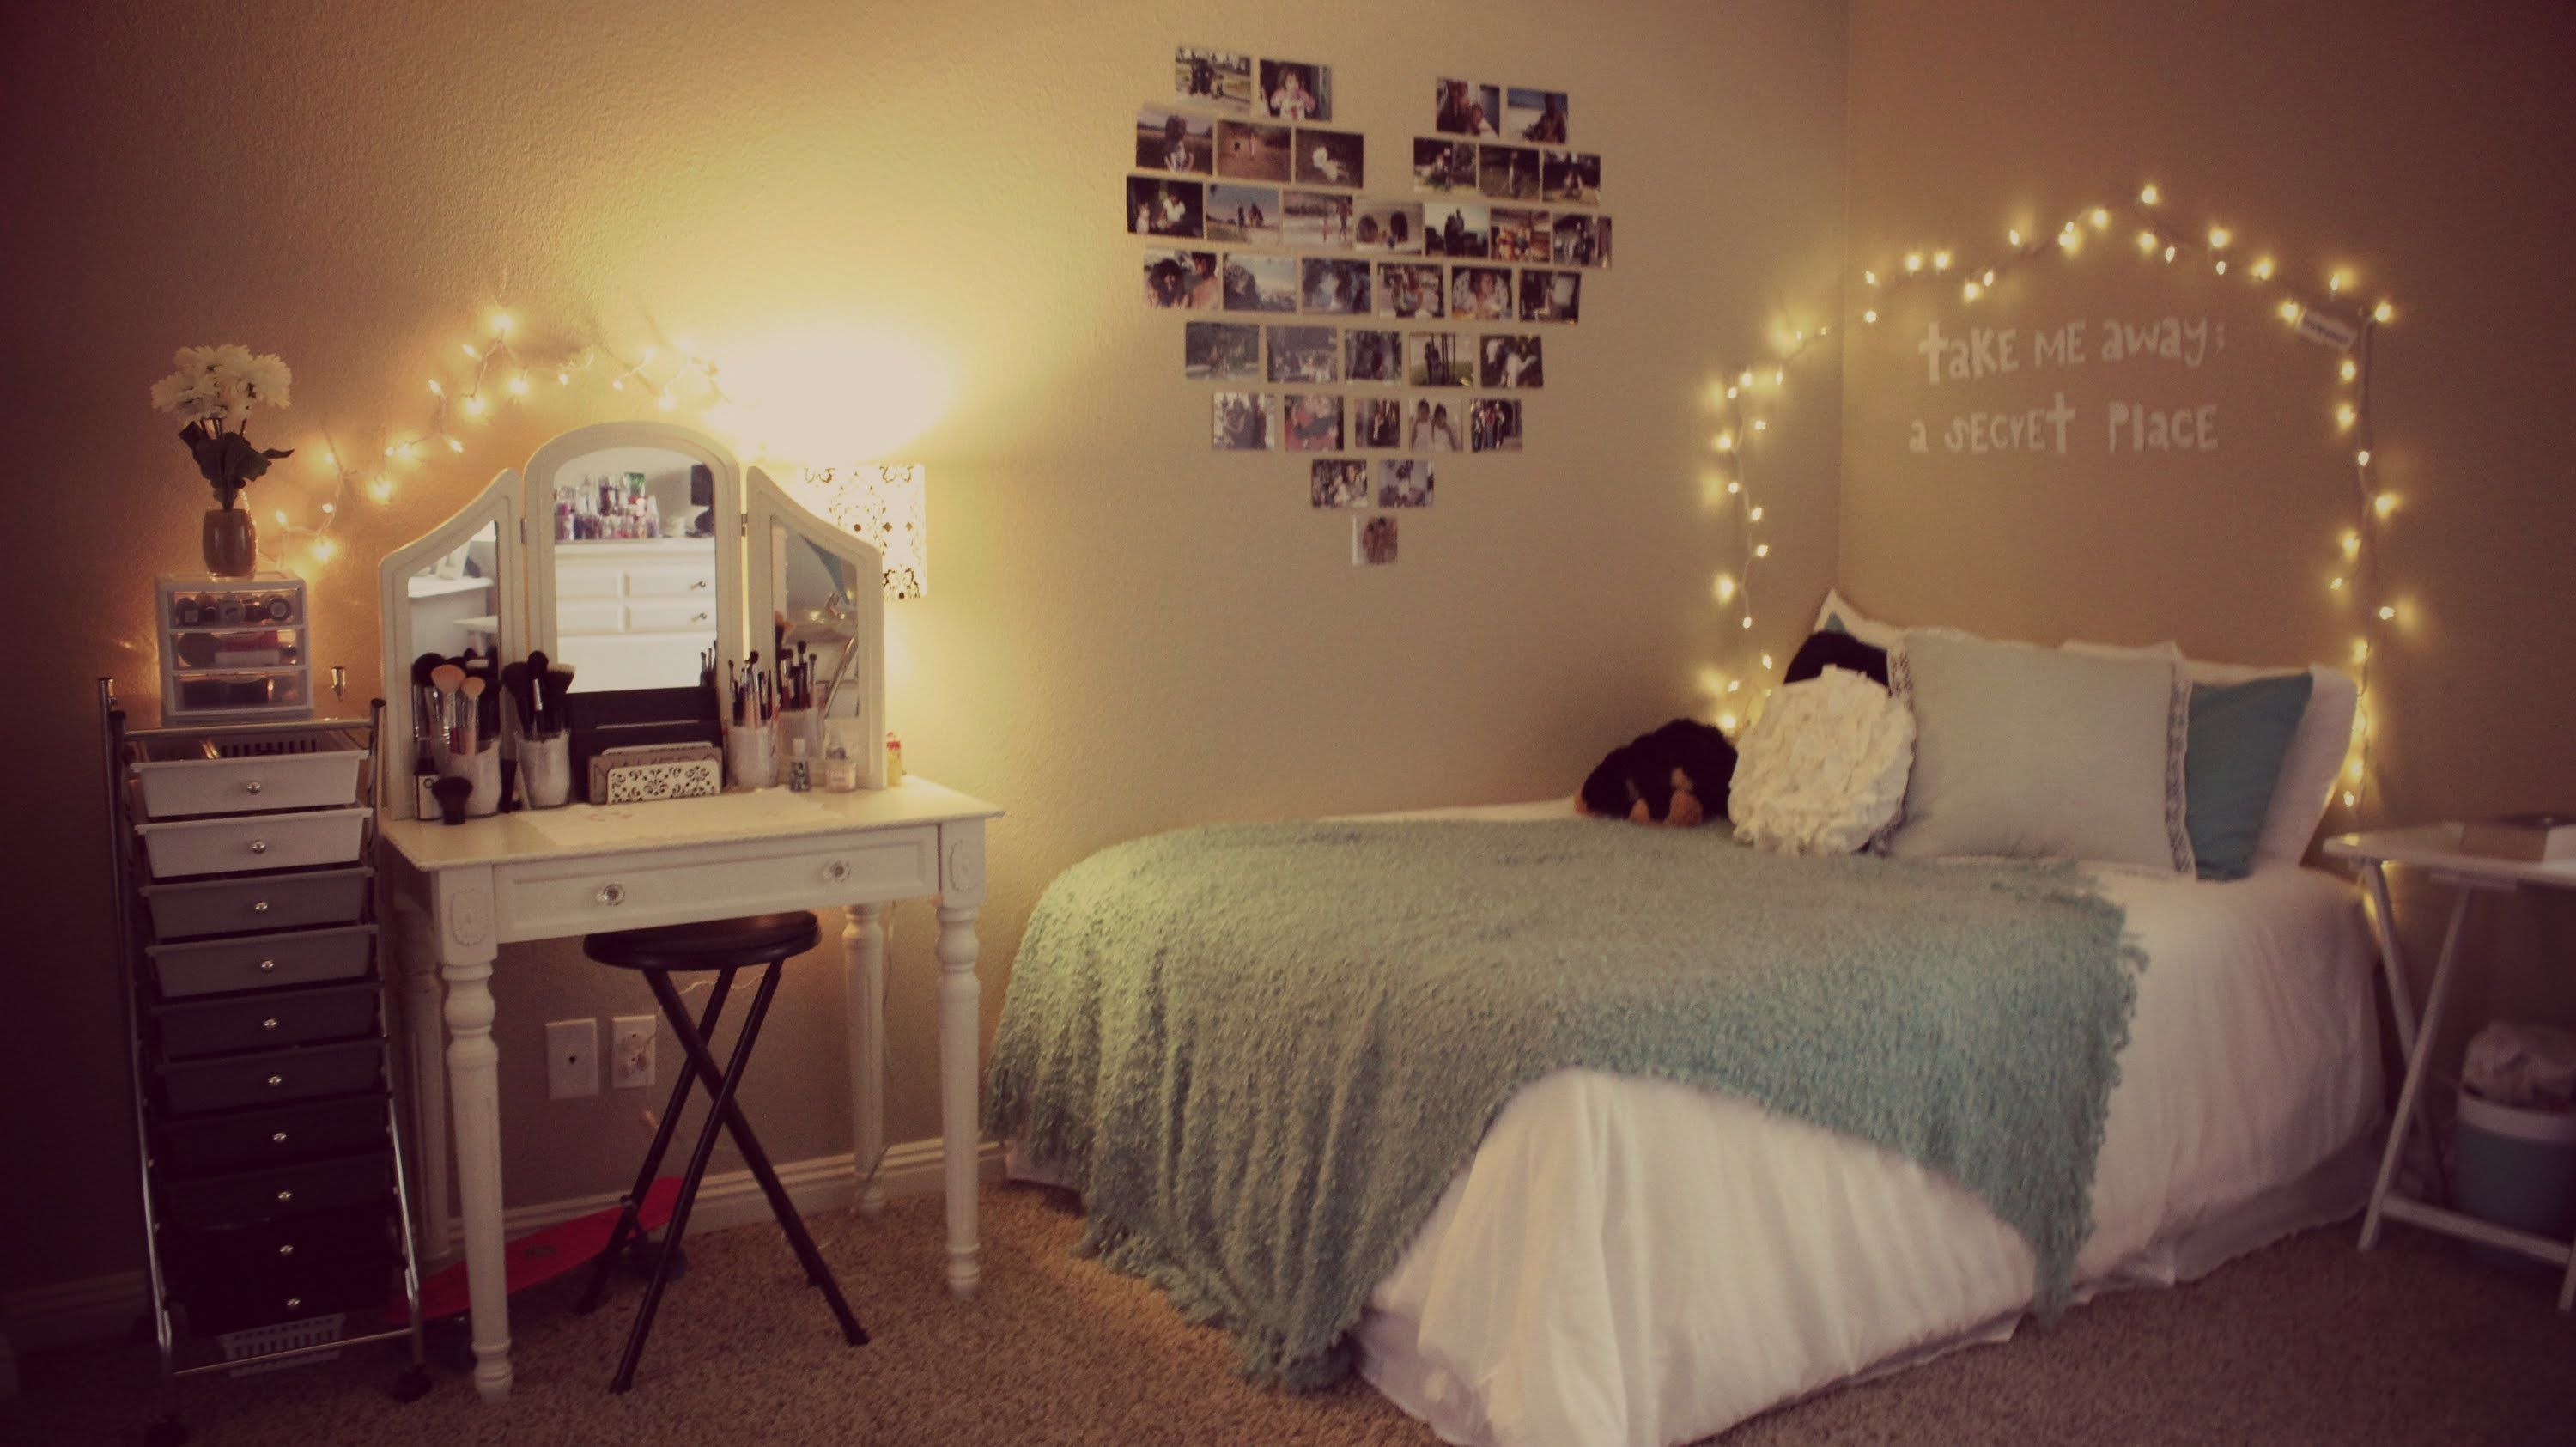 ROOM TOUR || BeautyBySiena ☆ | rondom stuff | Pinterest | Room ...